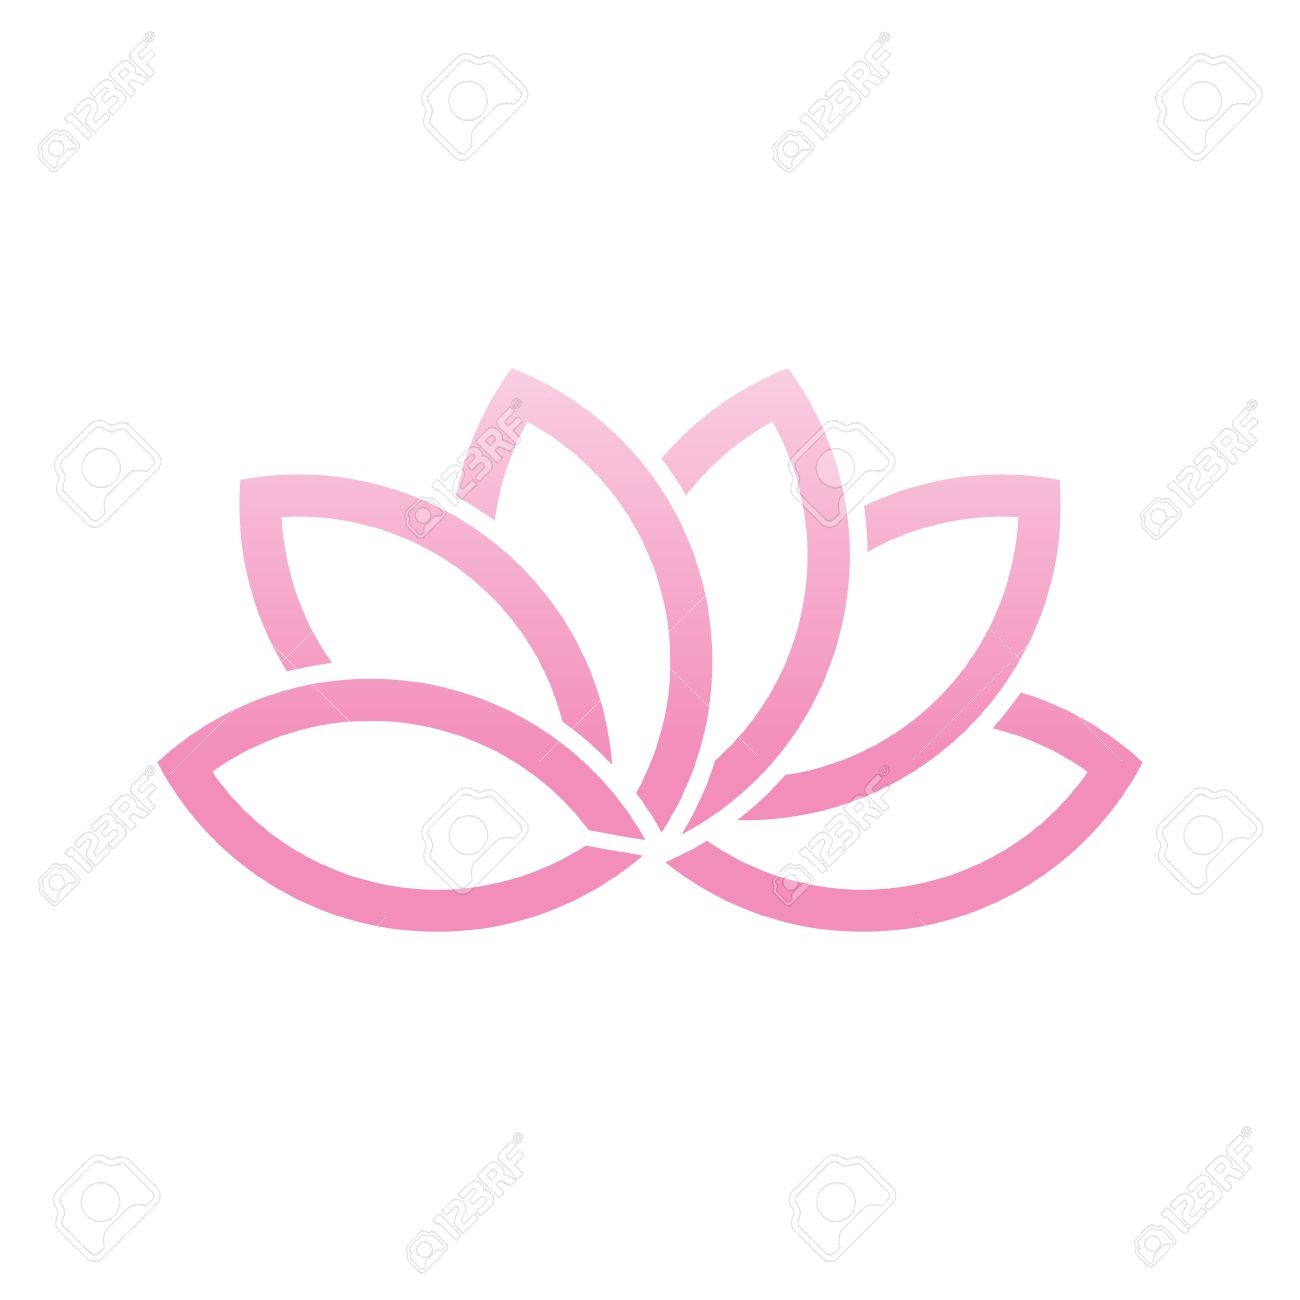 Lotus flower logo vector illustration royalty free cliparts lotus flower logo vector illustration stock vector 74131187 mightylinksfo